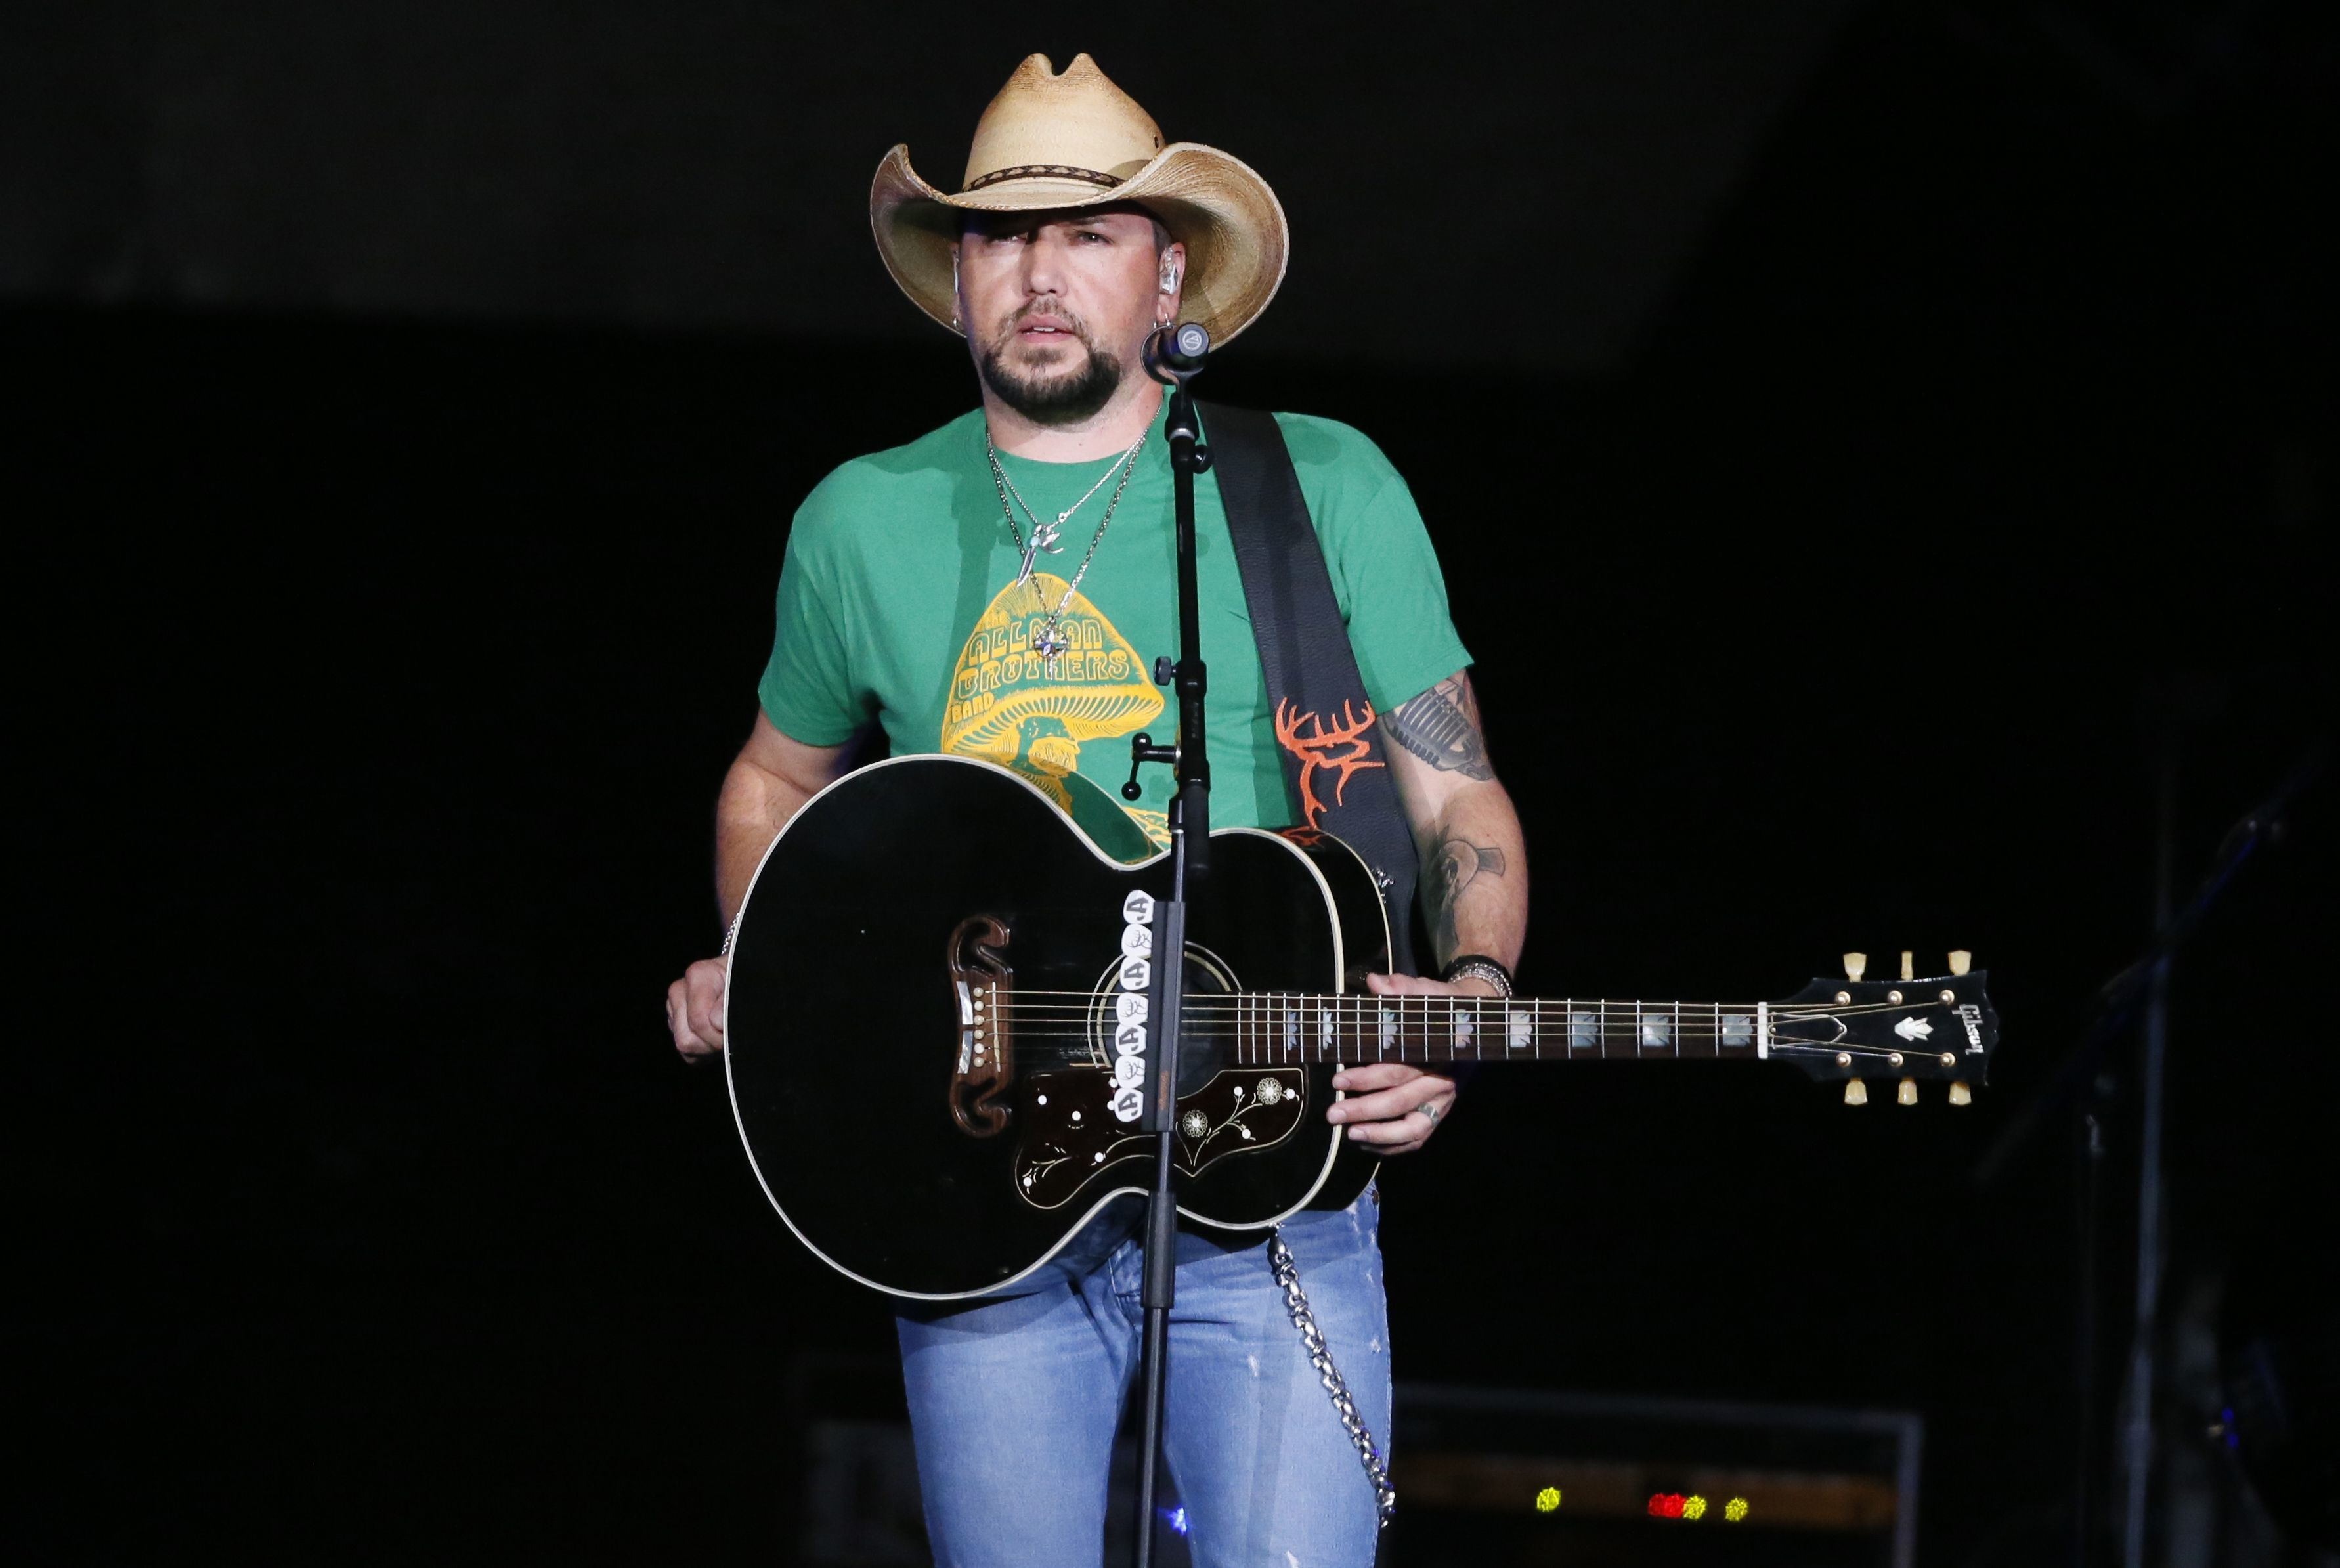 Jason Aldean addresses the crowd about the shooting in Las Vegas during his concert in Tulsa, Okla., on Oct. 12, 2017.